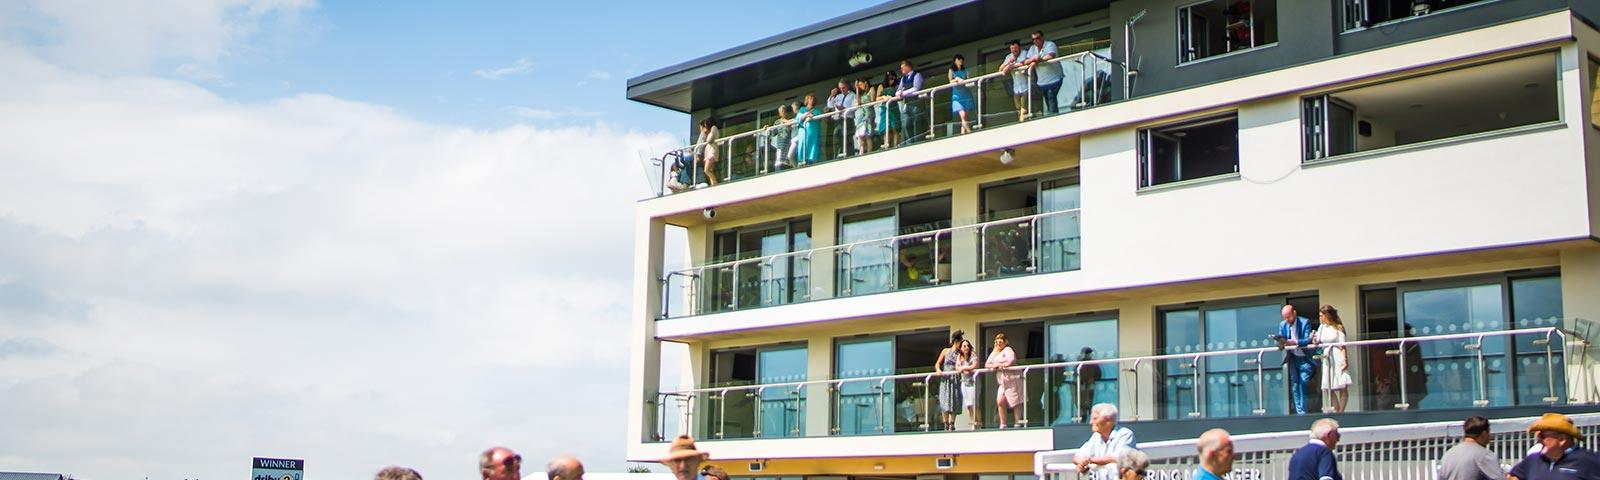 Main building at Bath Racecourse hosting a number of restaurants and suites.